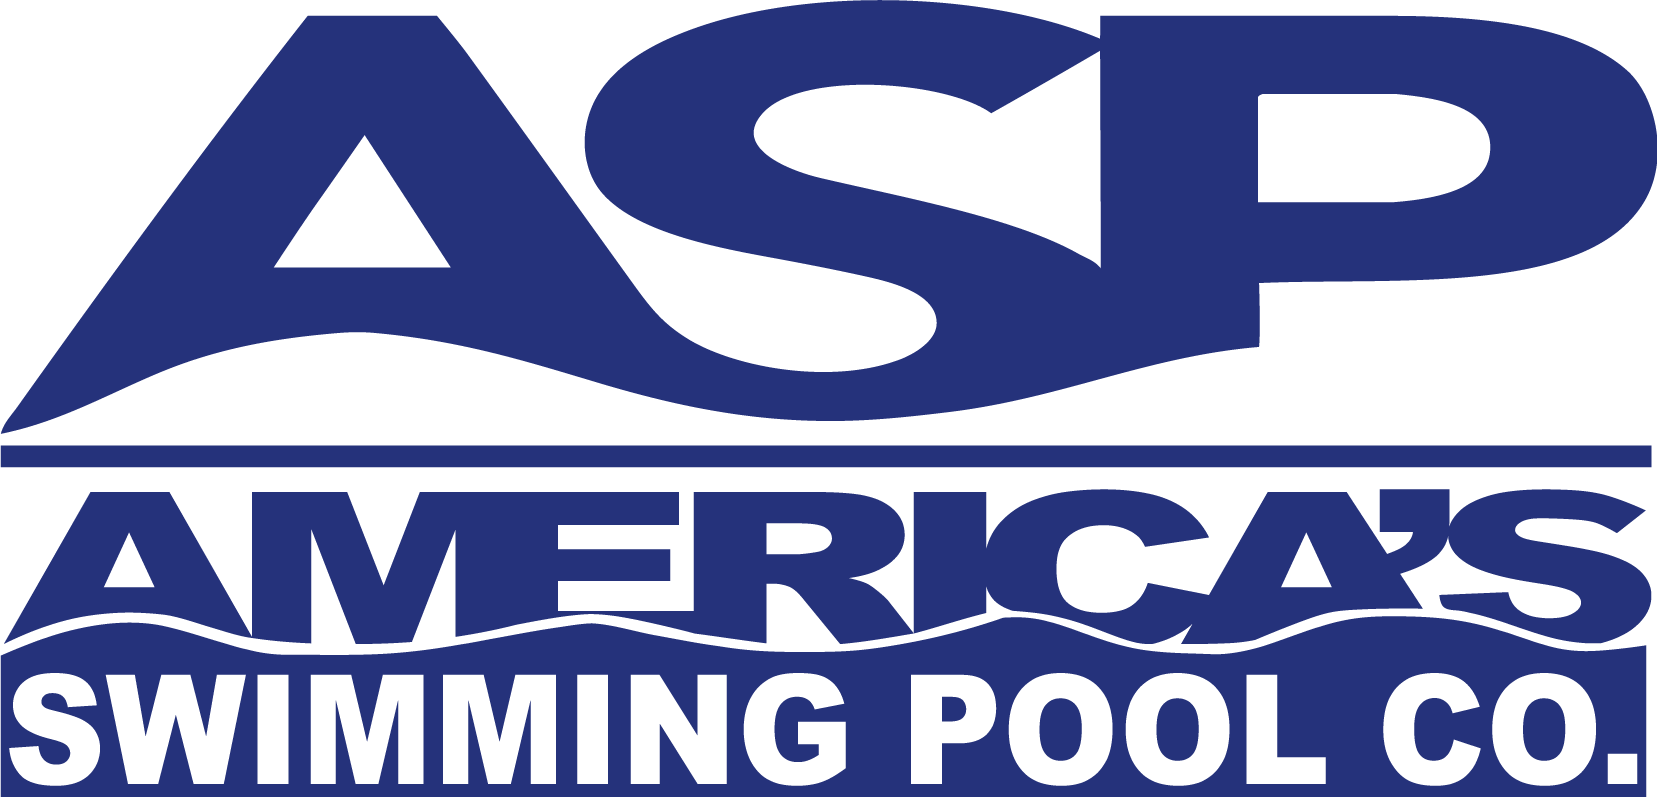 Asp Swimming Pool Service Franchise Under New Management